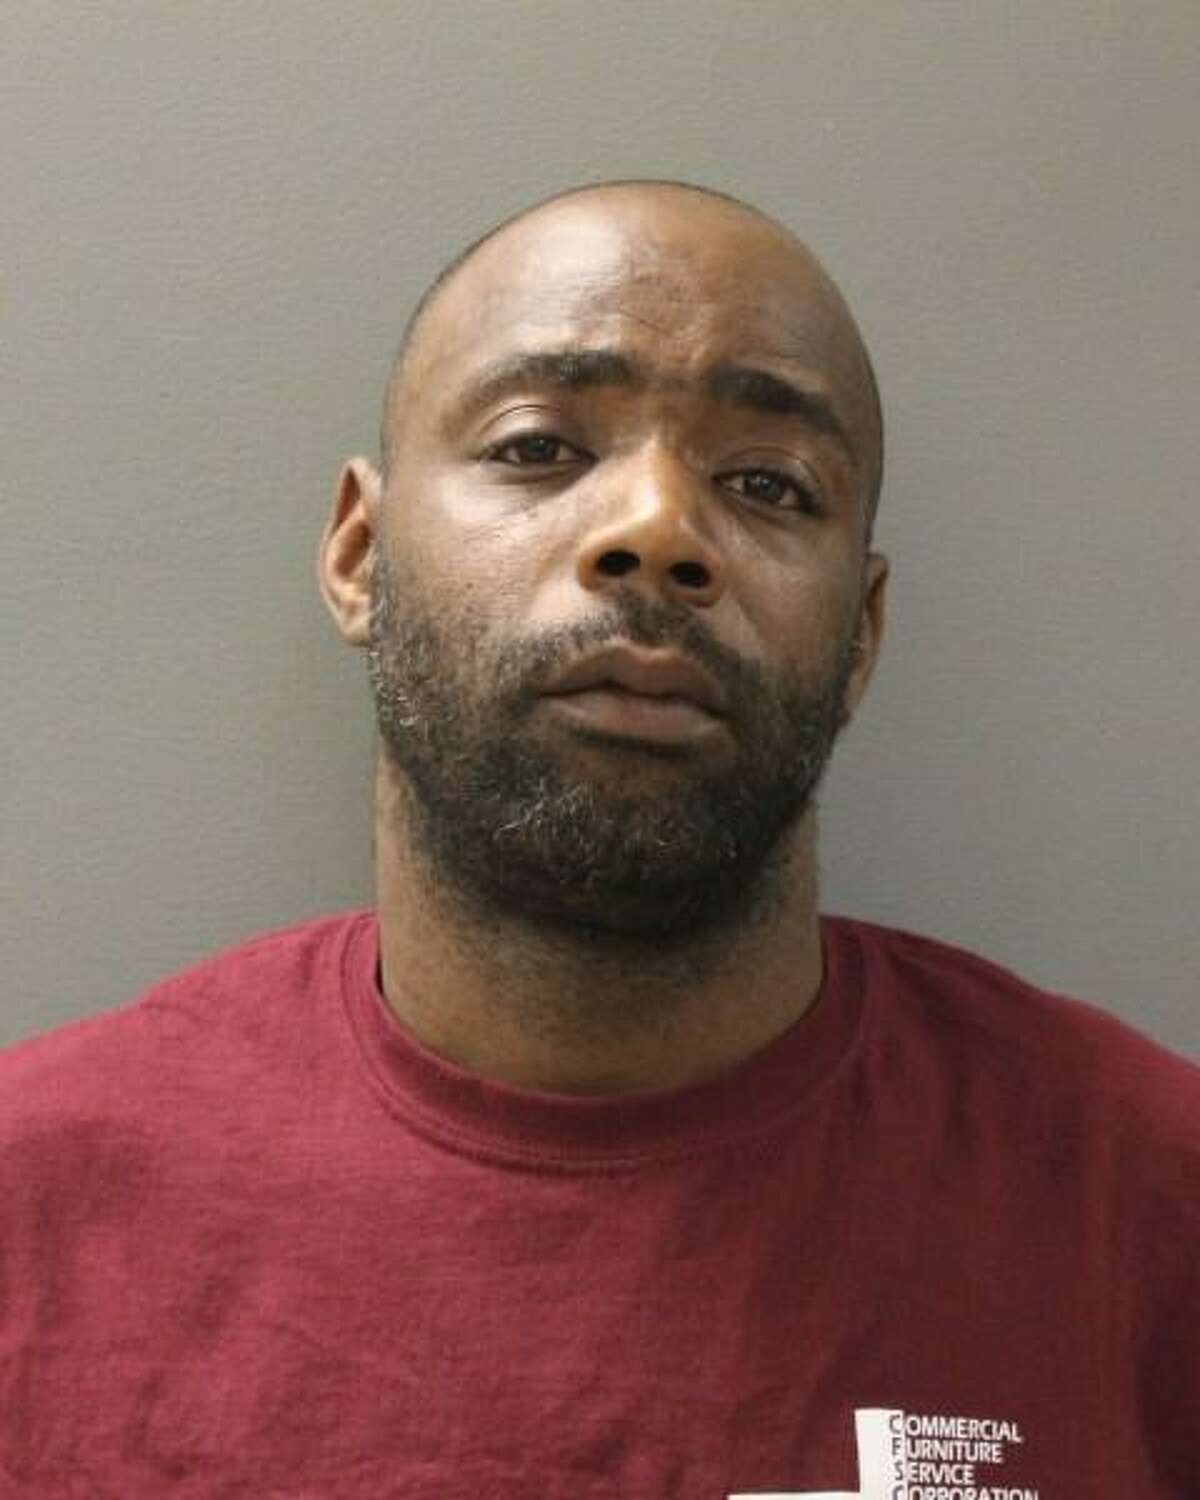 Hamden police arrested Otis Bowens, 39, of Hamden, after he allegedly beat his landlord. Photo courtesy of the Hamden Police.